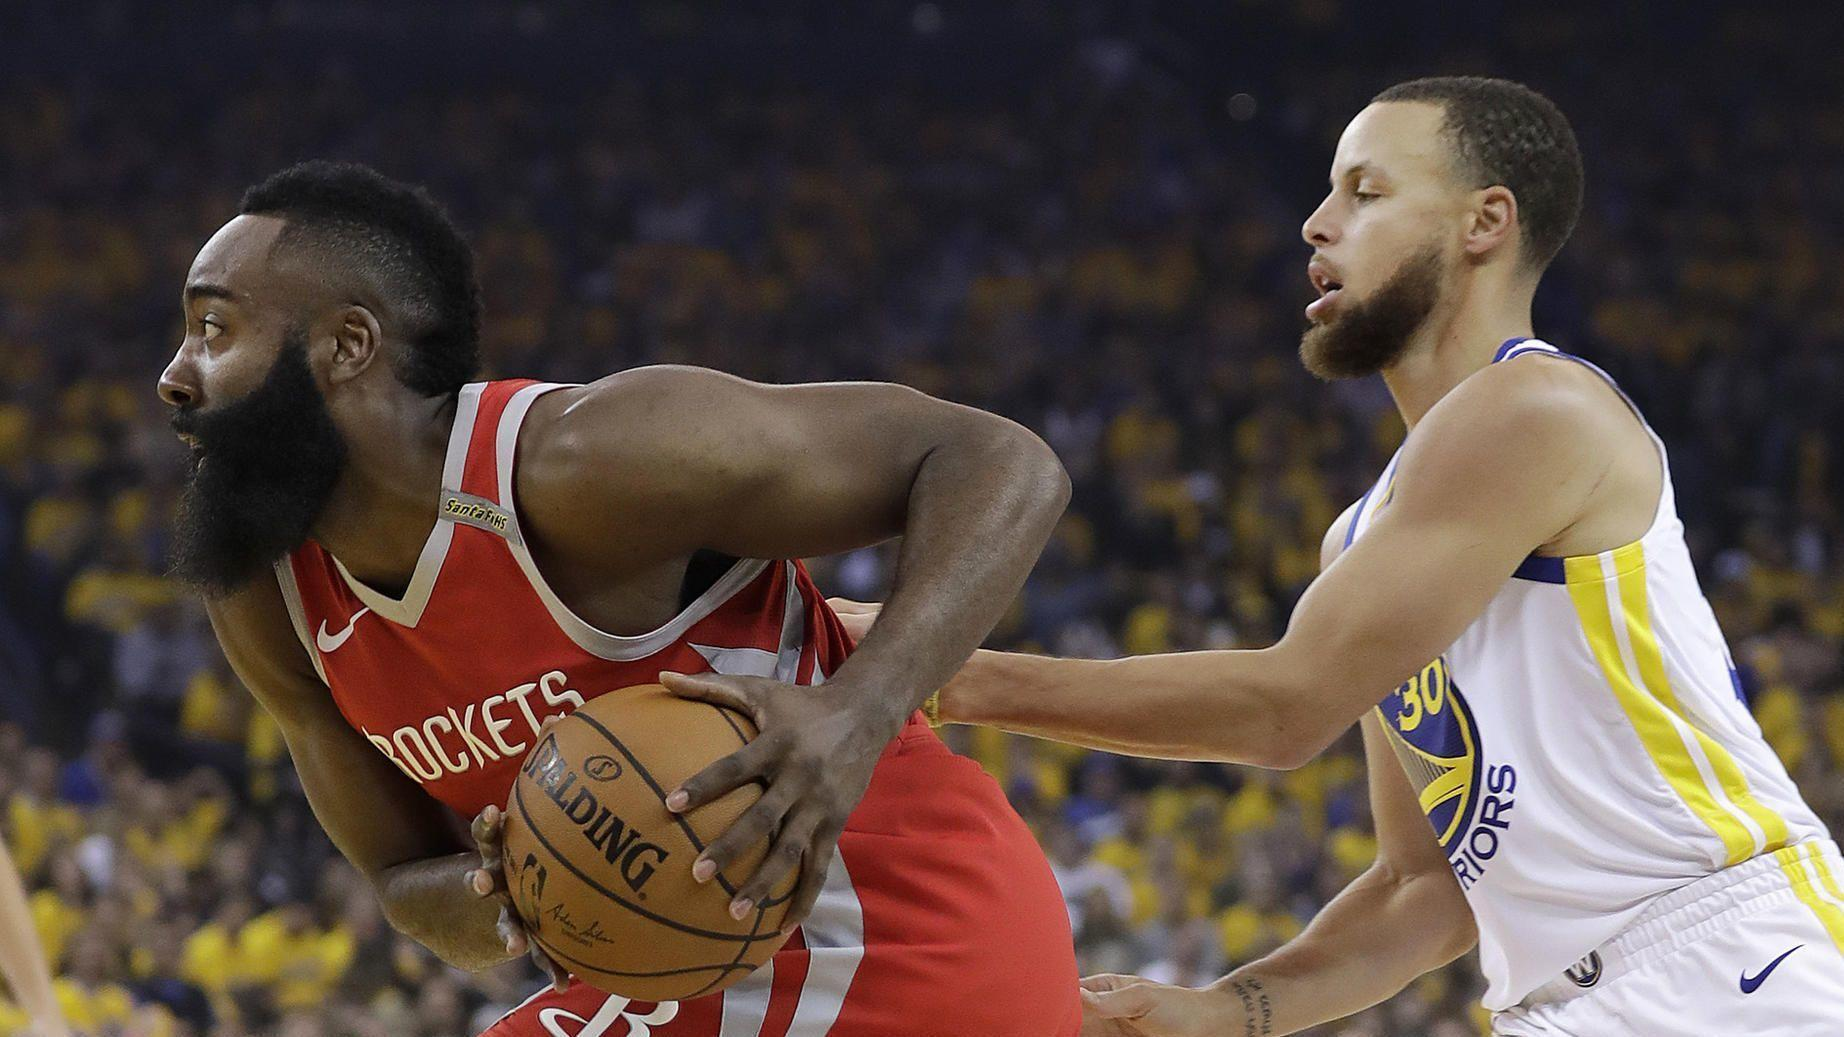 Warriors, Rockets set for Game 7 in West finals - Chicago ...Rockets Game